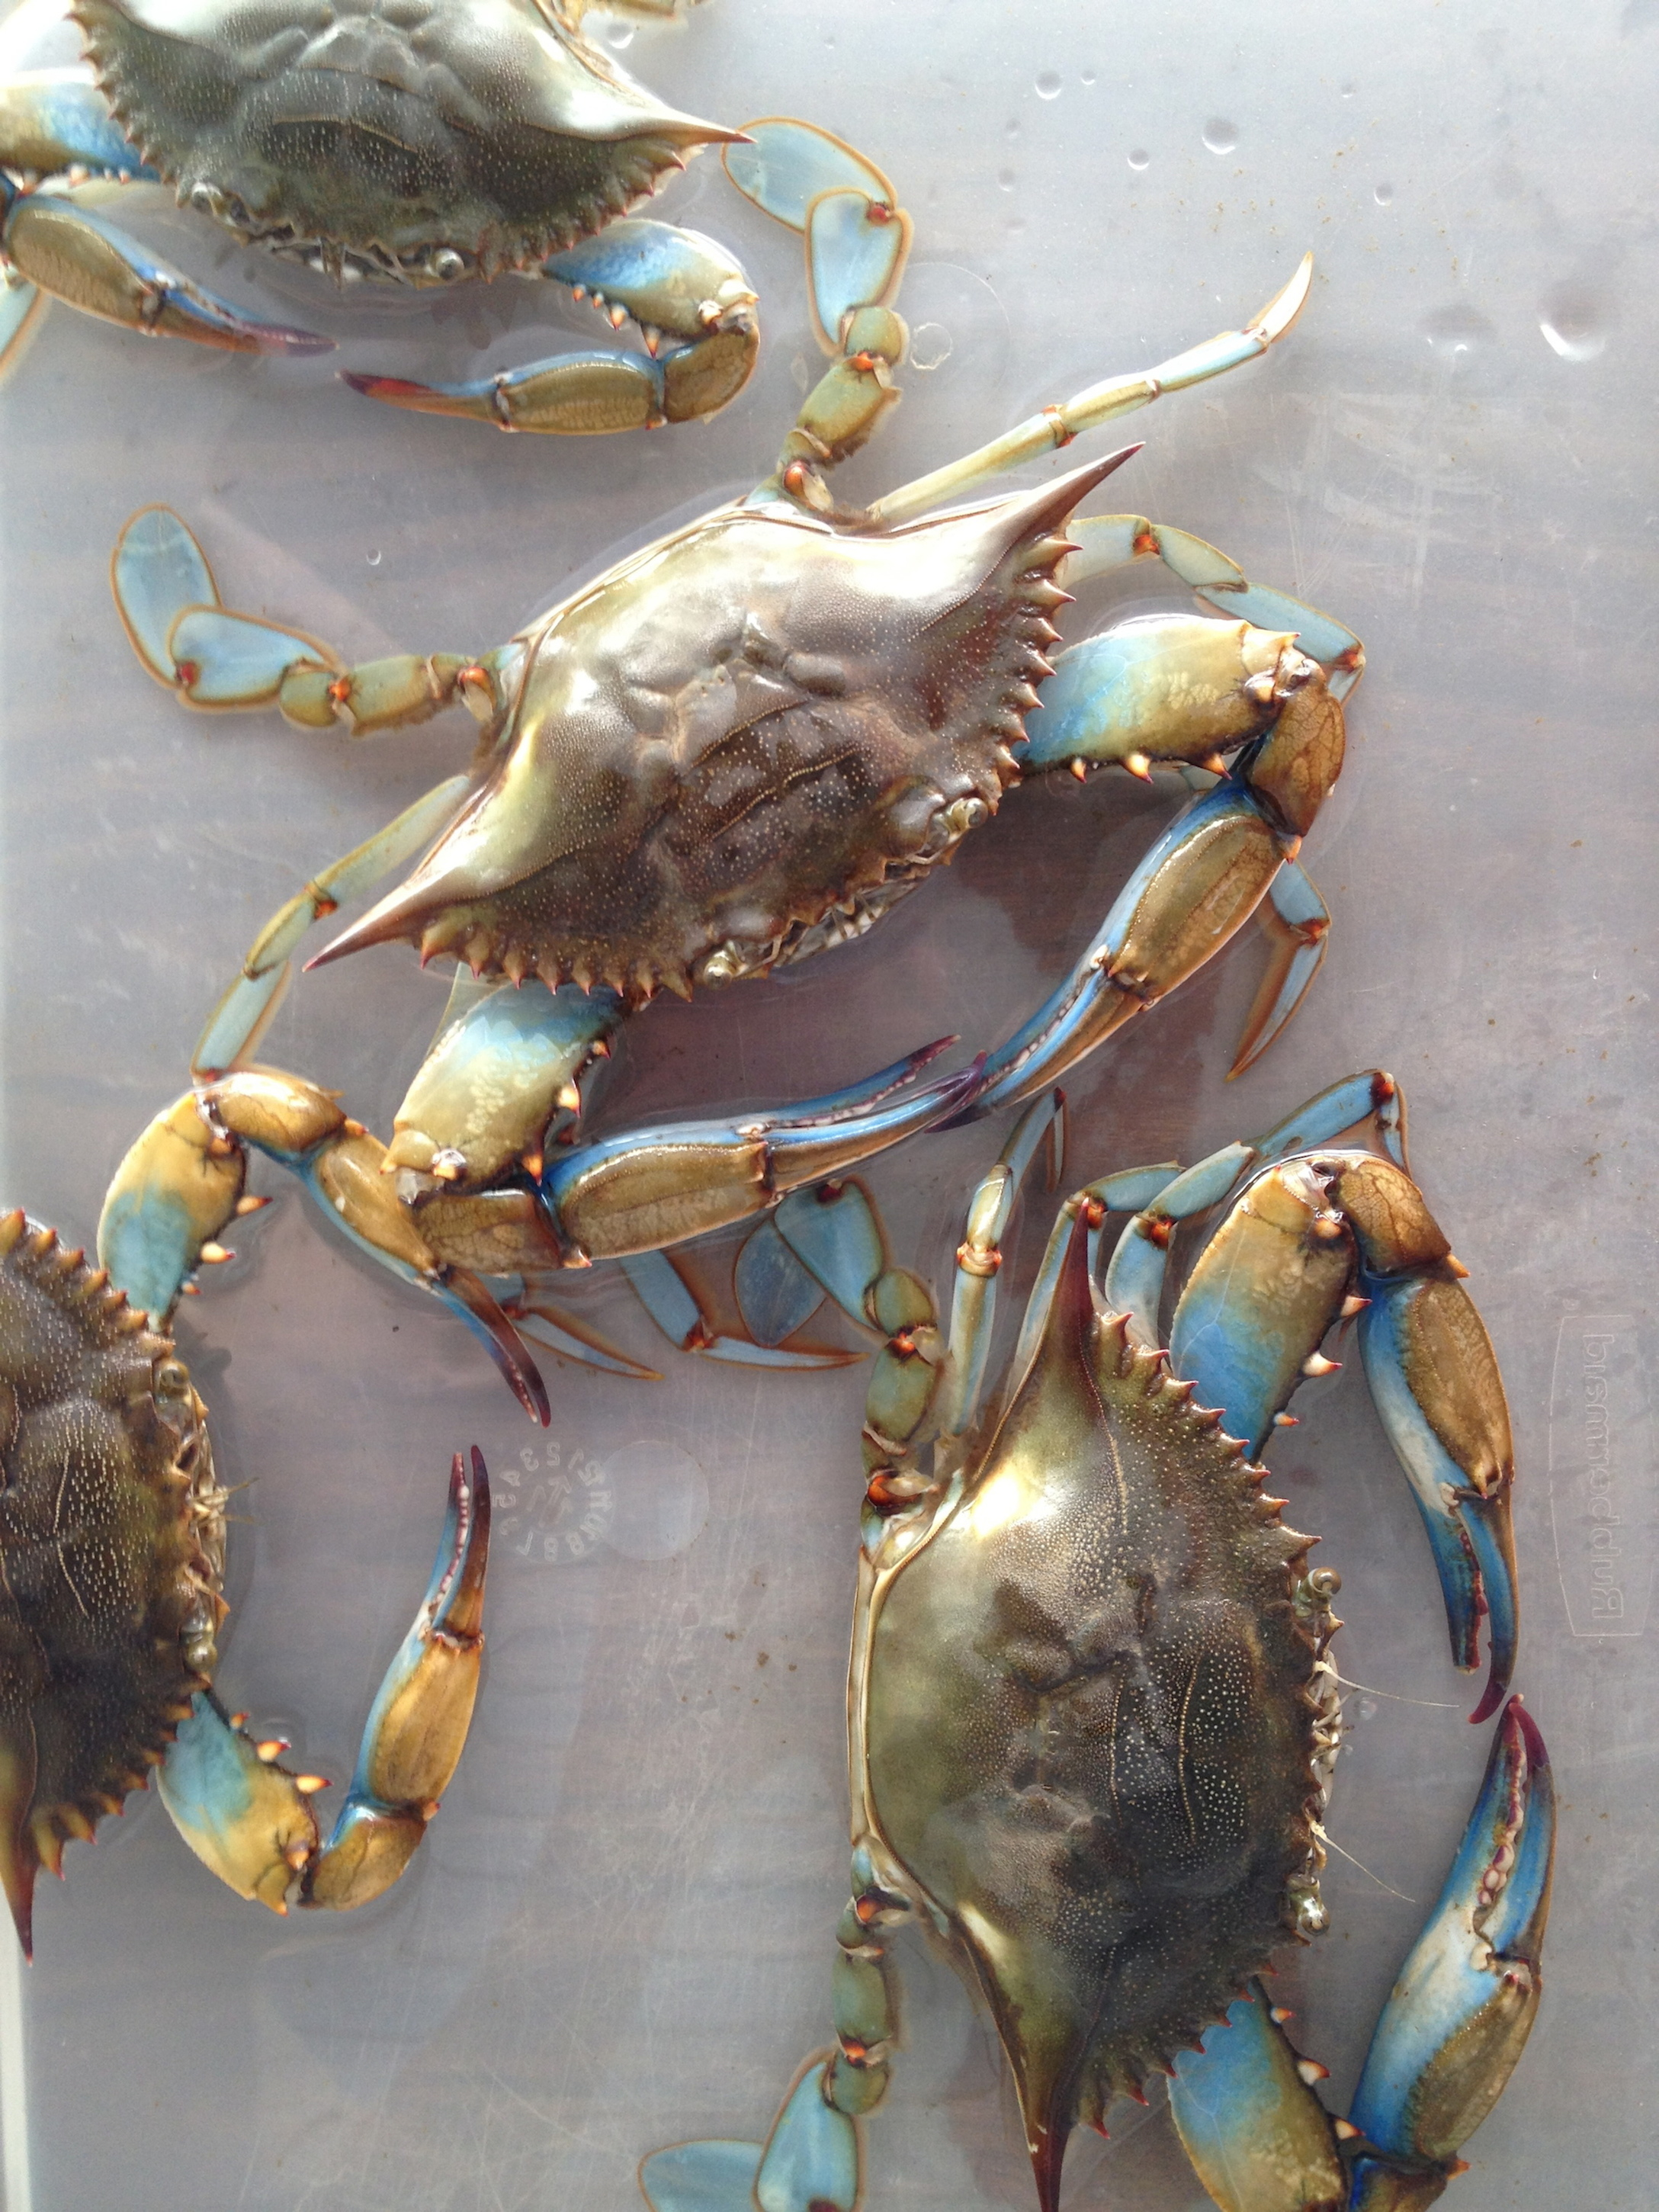 how to choose a good crab